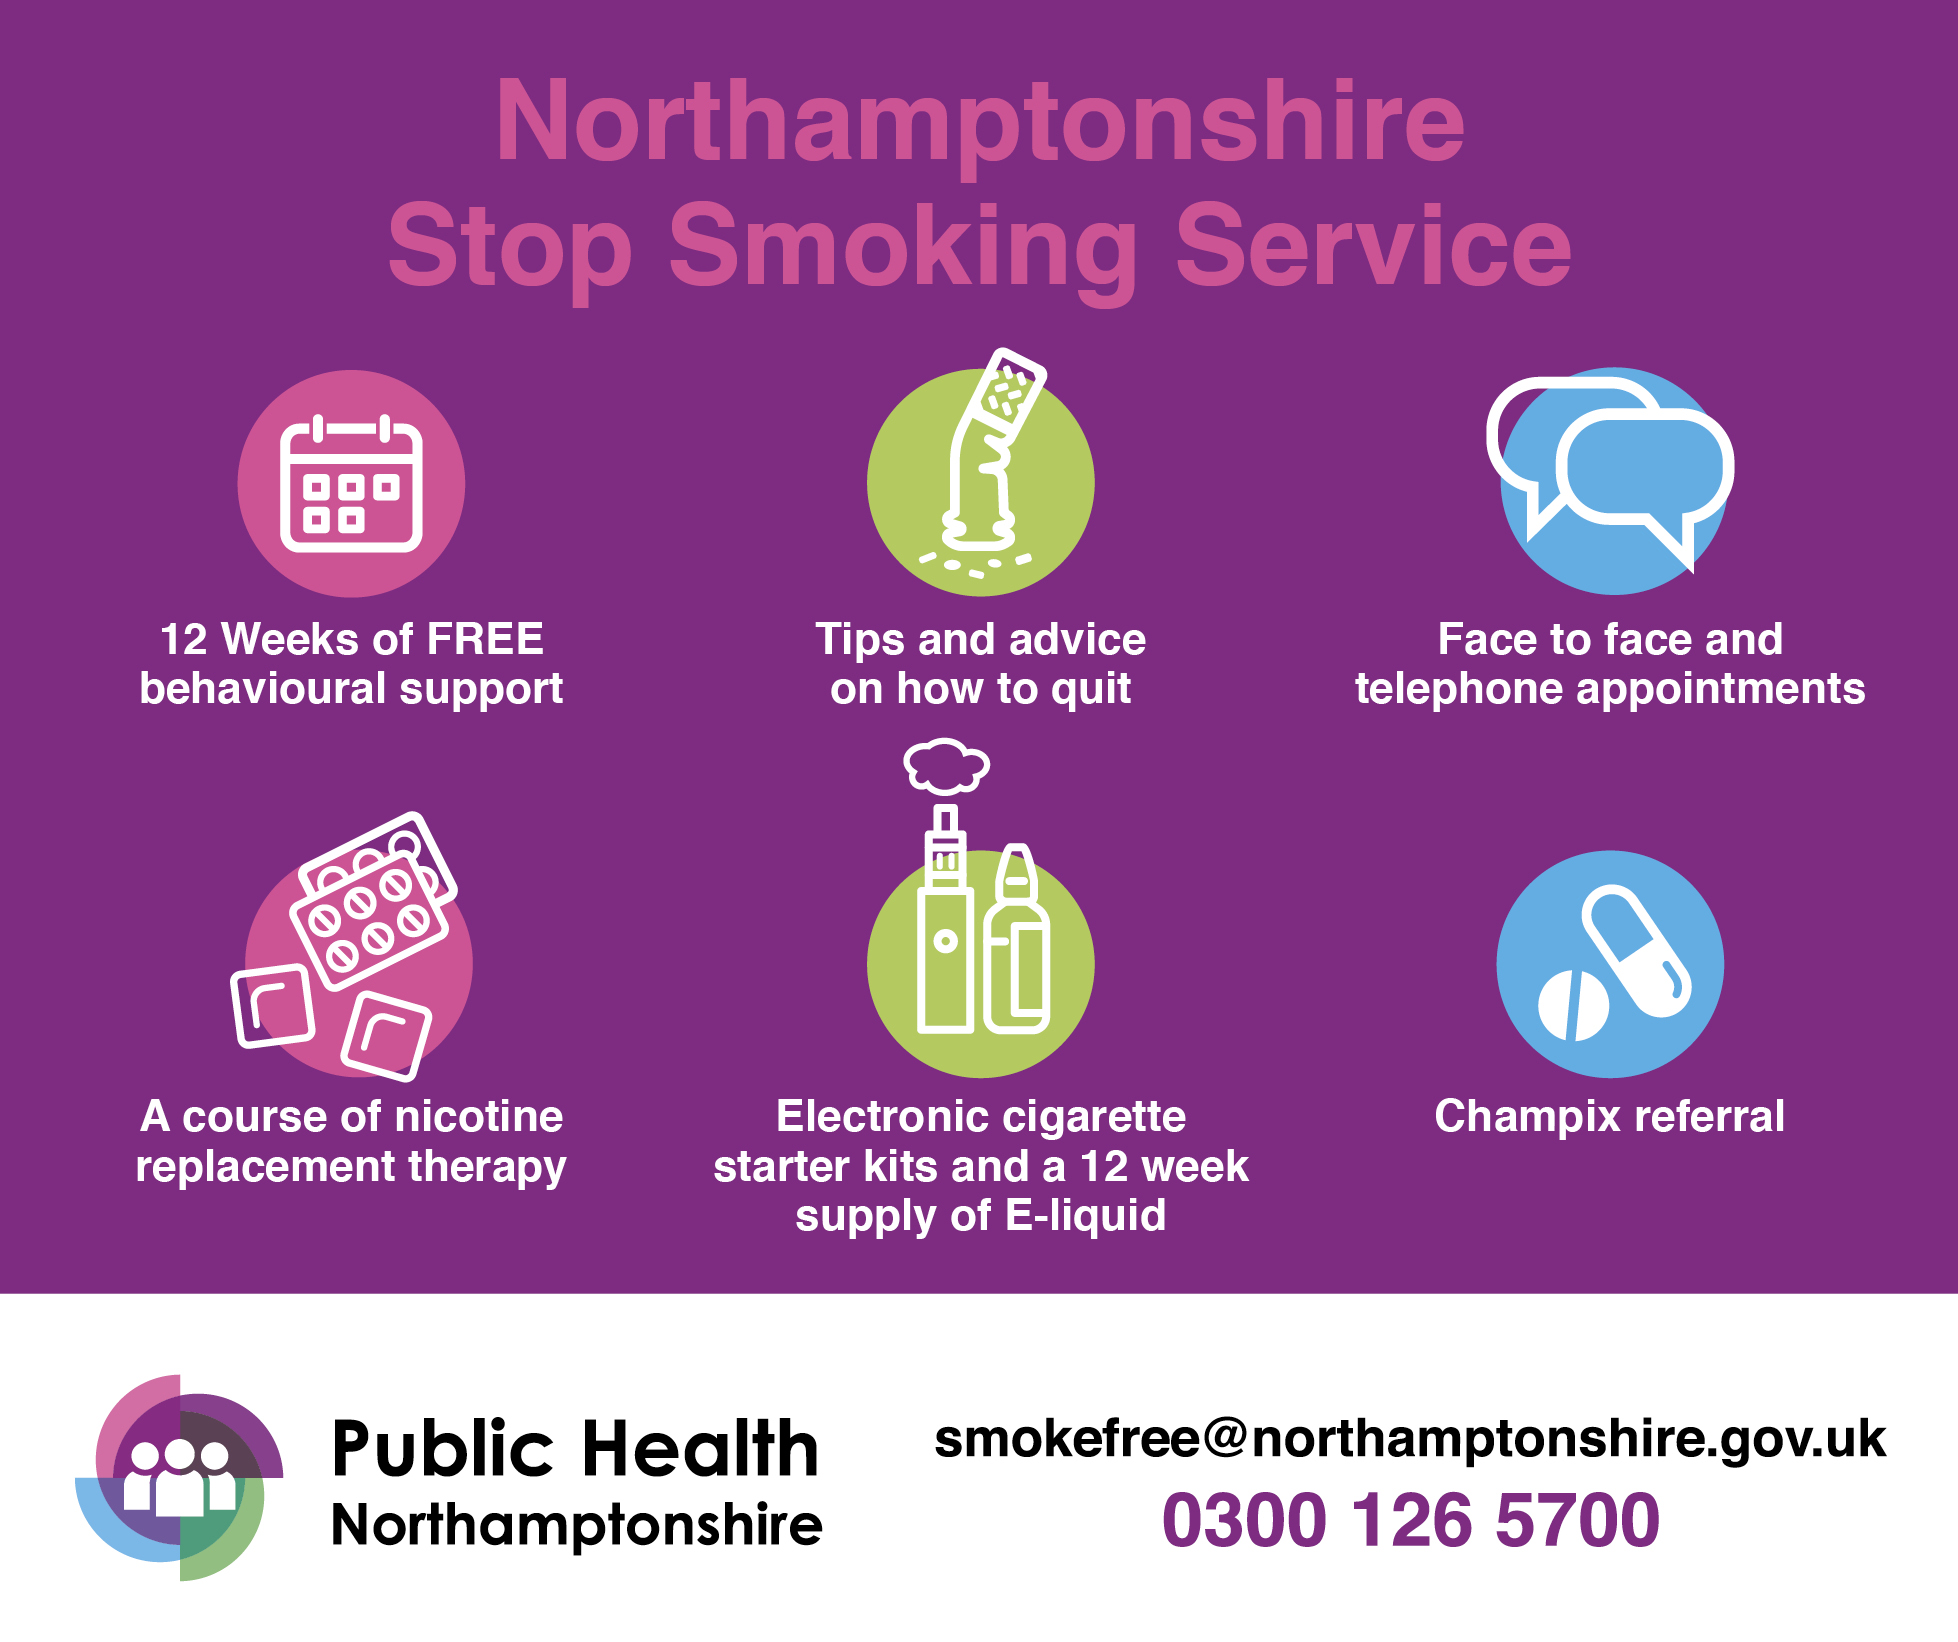 Northamptonshire Stop Smoking service - call 0300 126 5700